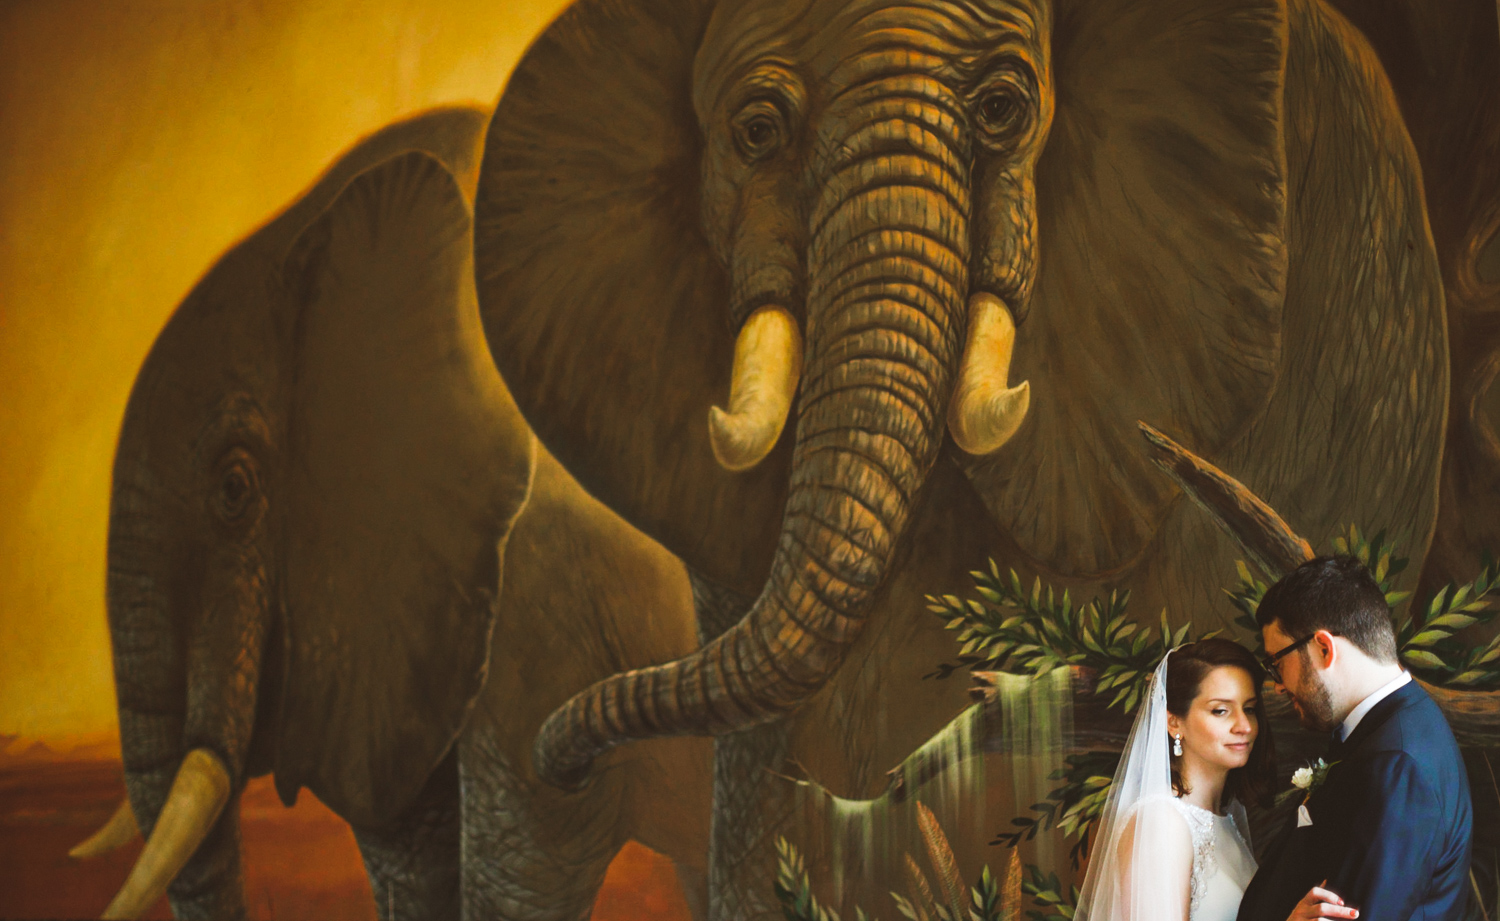 016 - bride and groom portrait in front of elephant mural.jpg